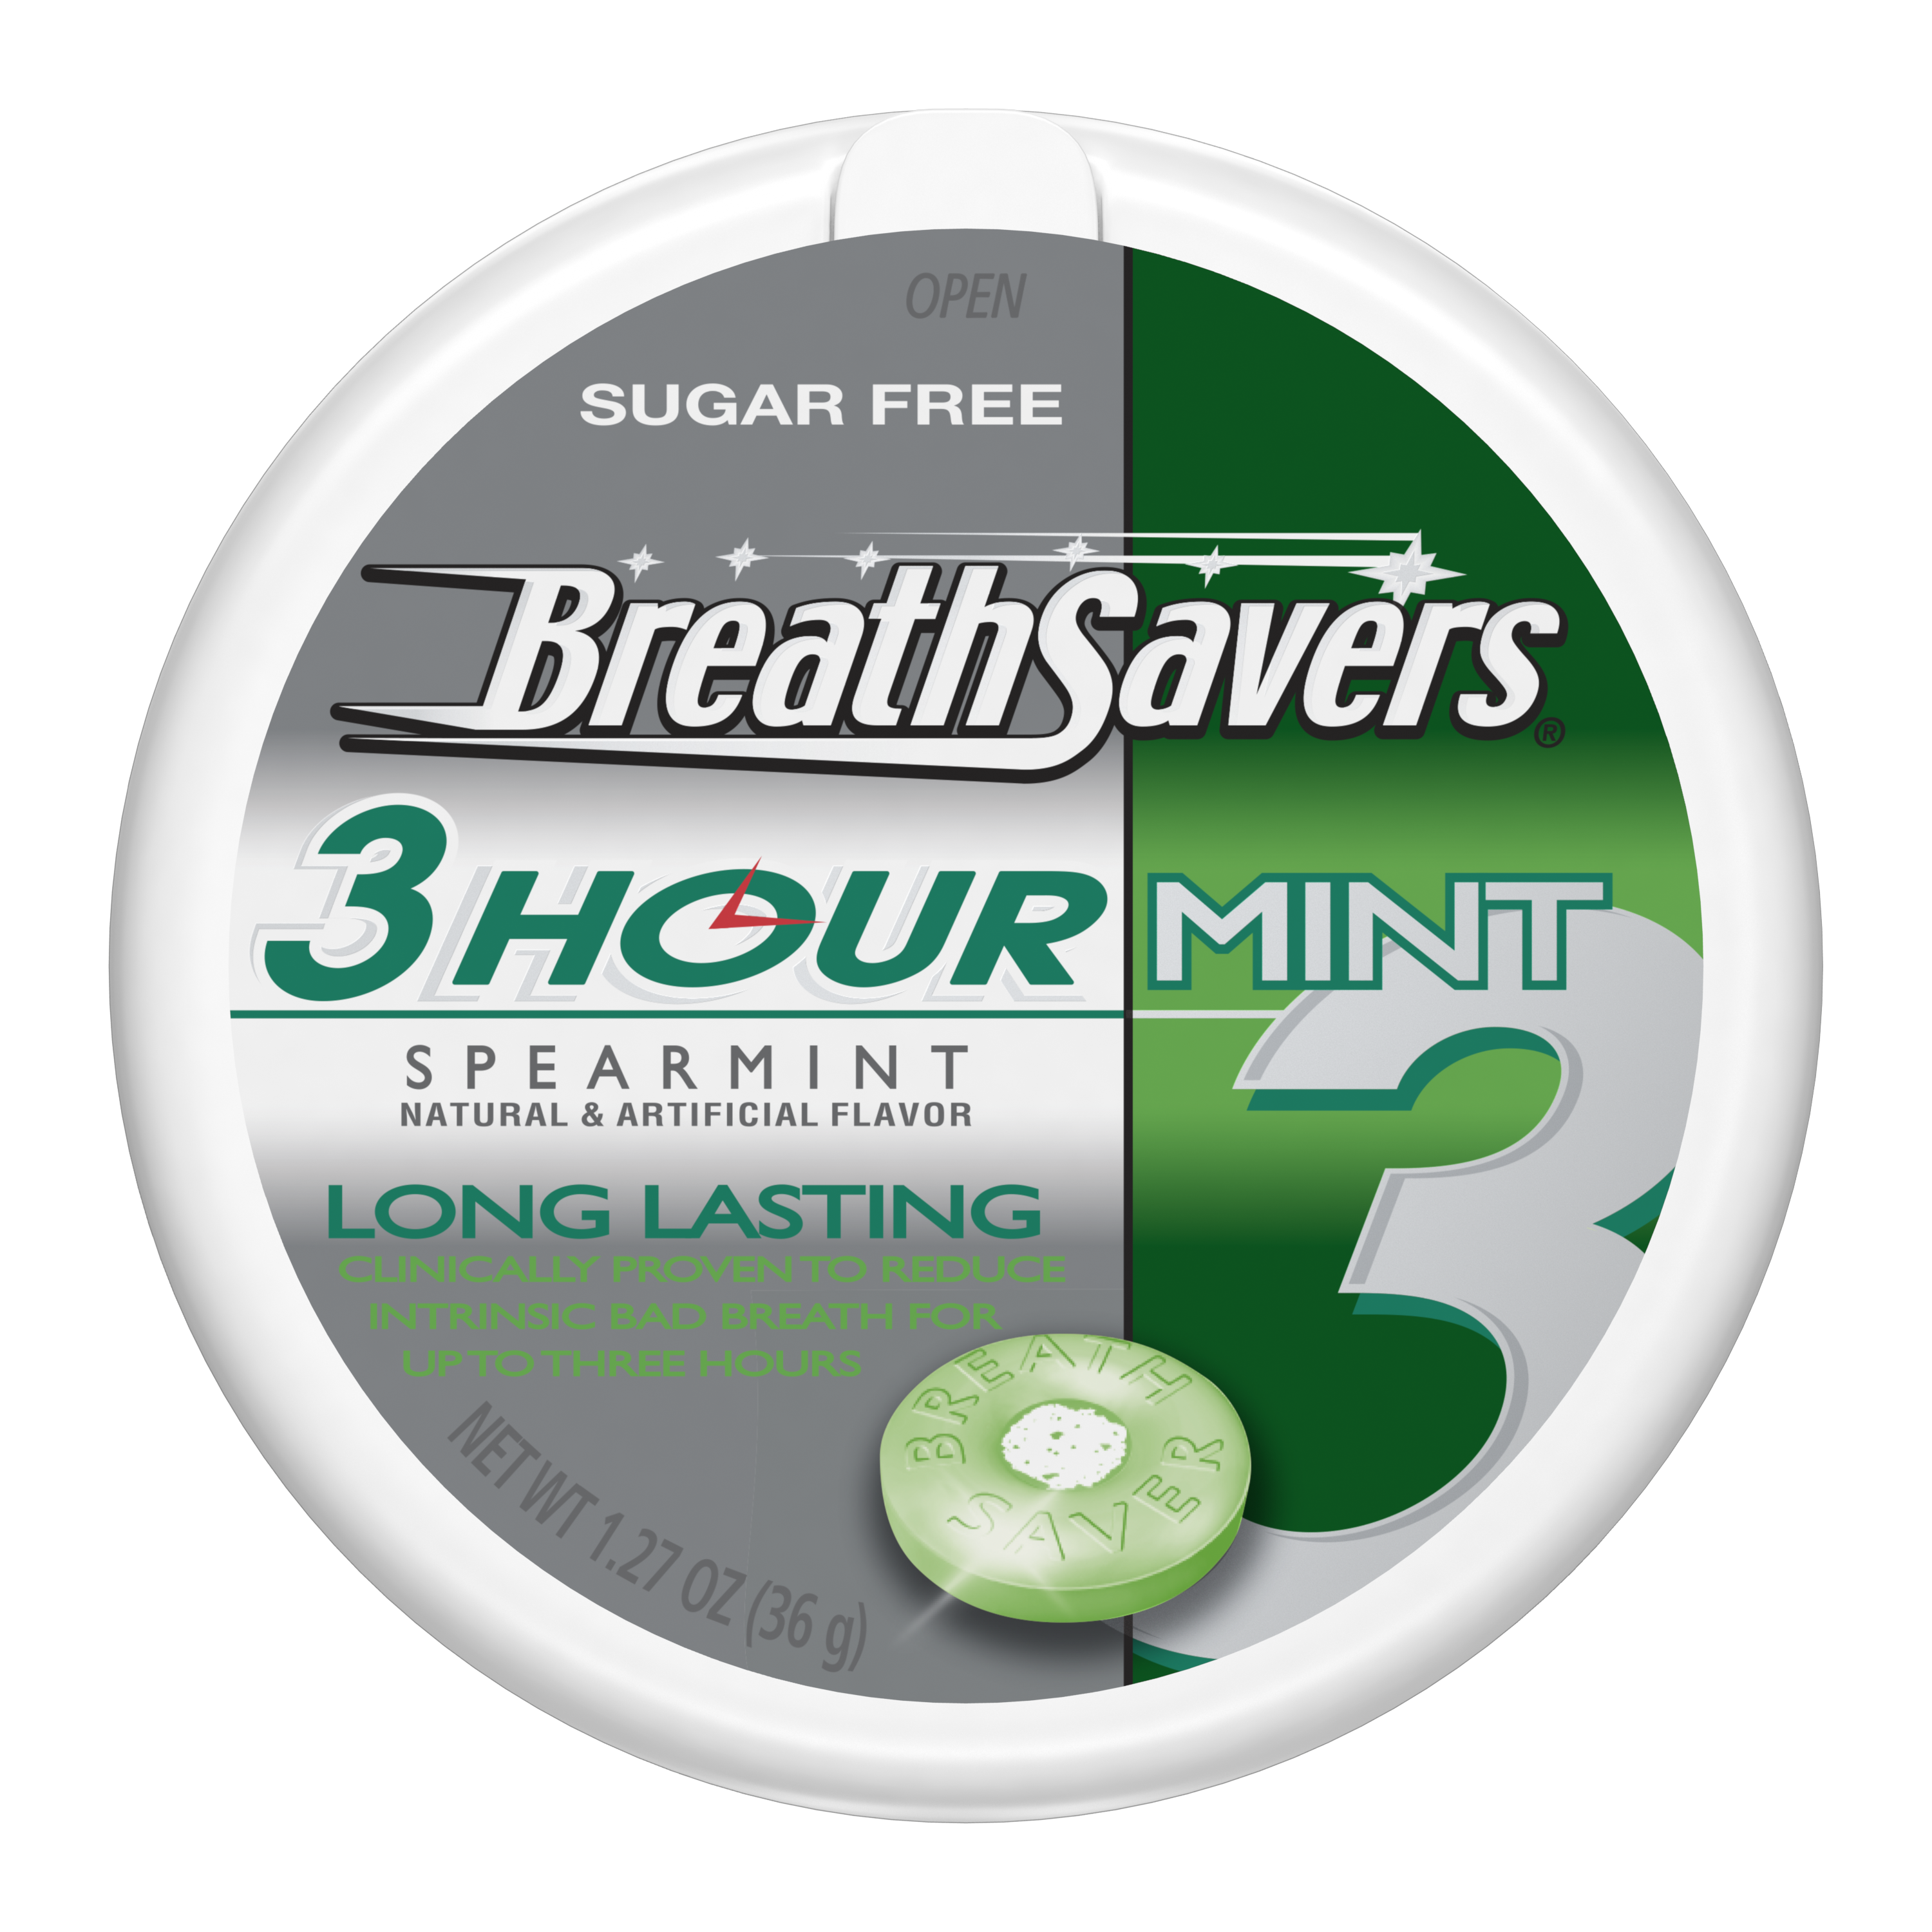 BREATH SAVERS 3-Hour Spearmint Sugar Free Mints, 1.27 oz puck - Front of Package